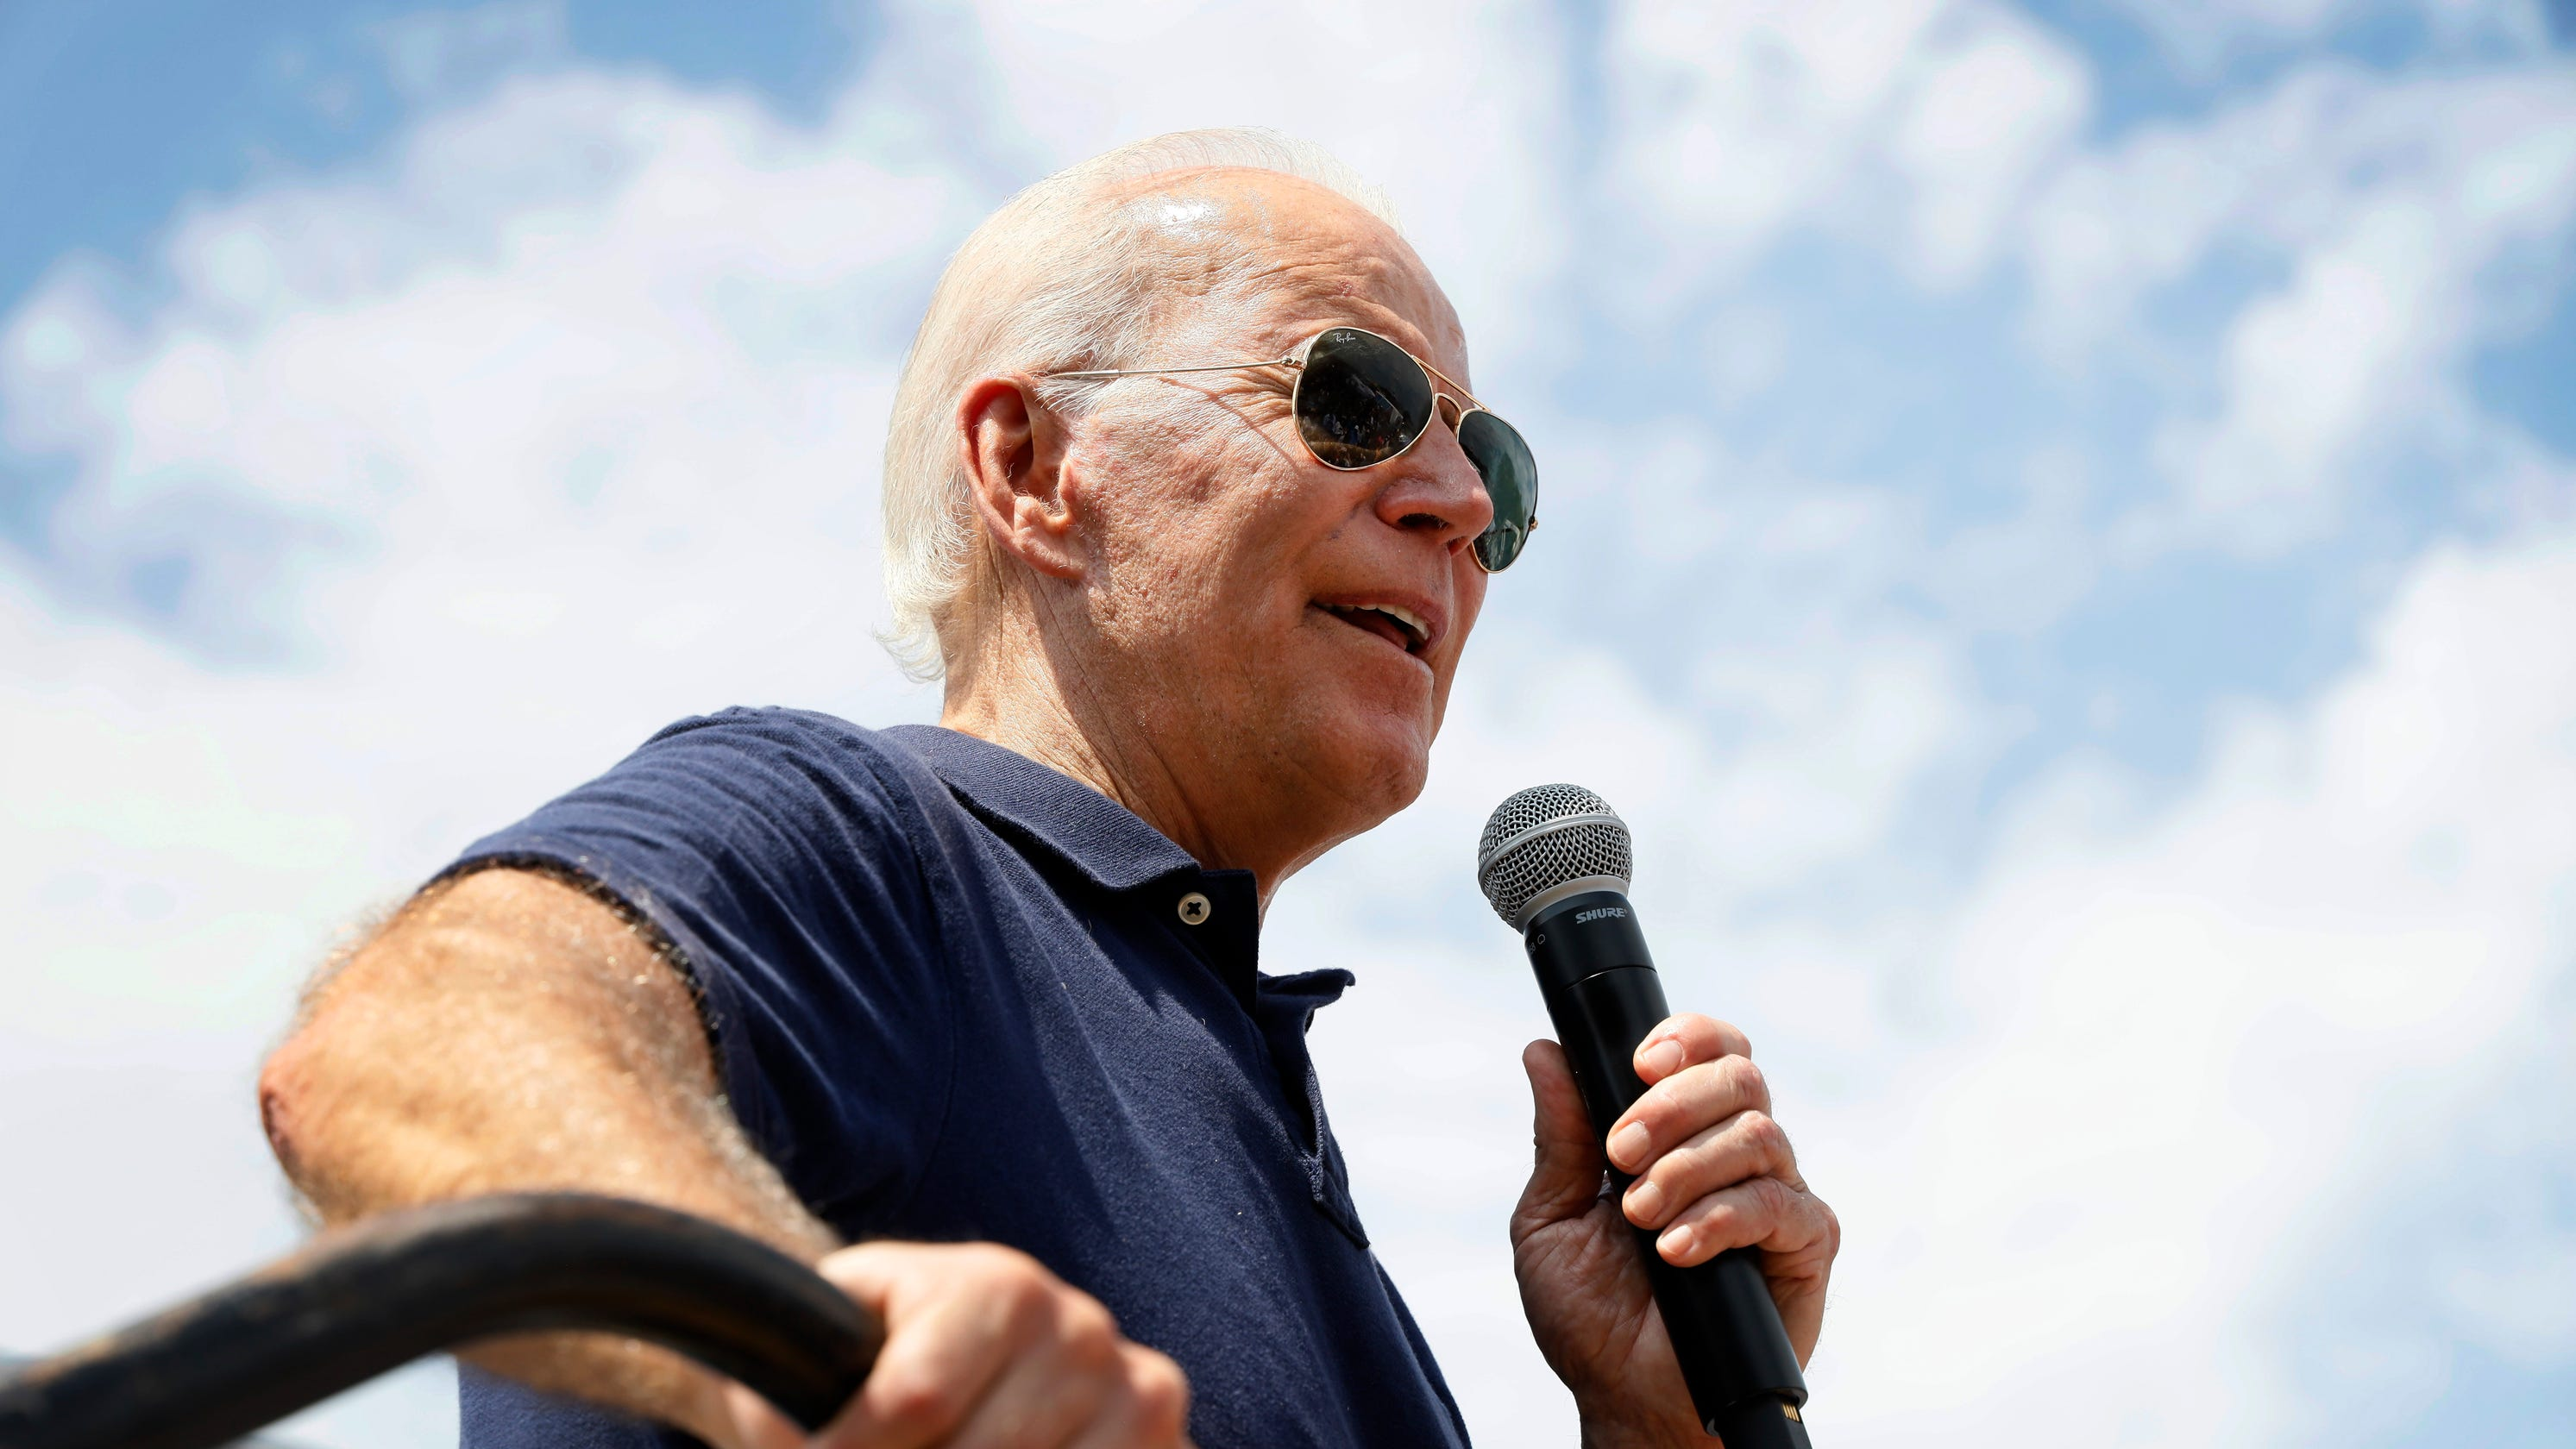 Too old for president? Health and fitness a better question